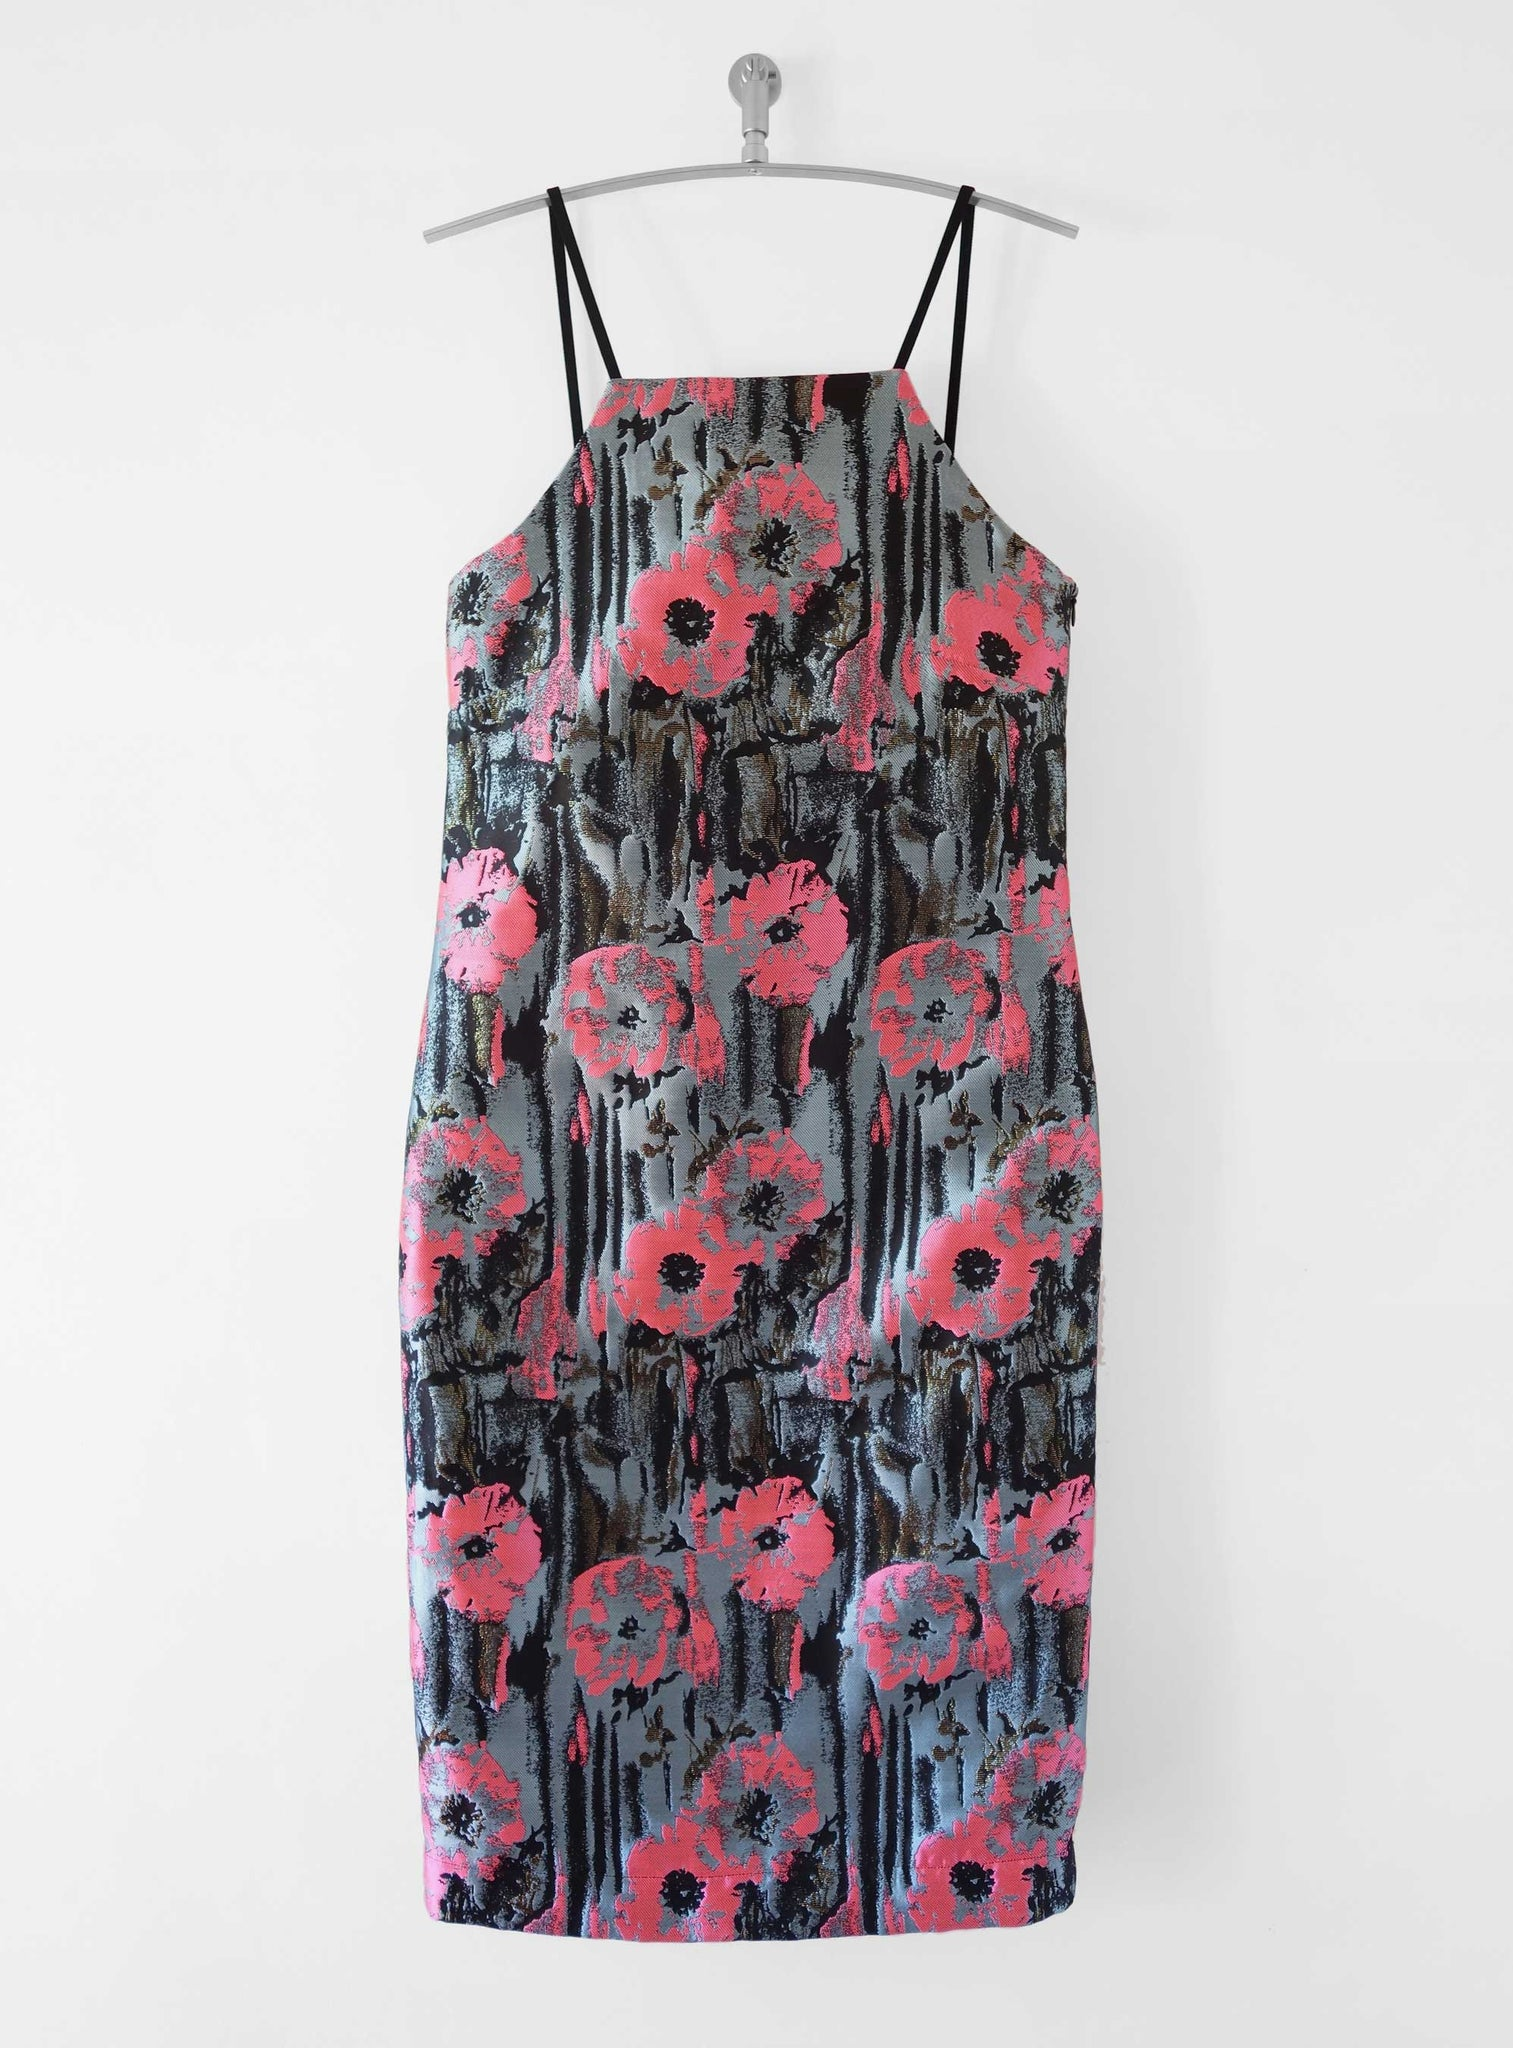 Realist Cami Dress | Technifloral